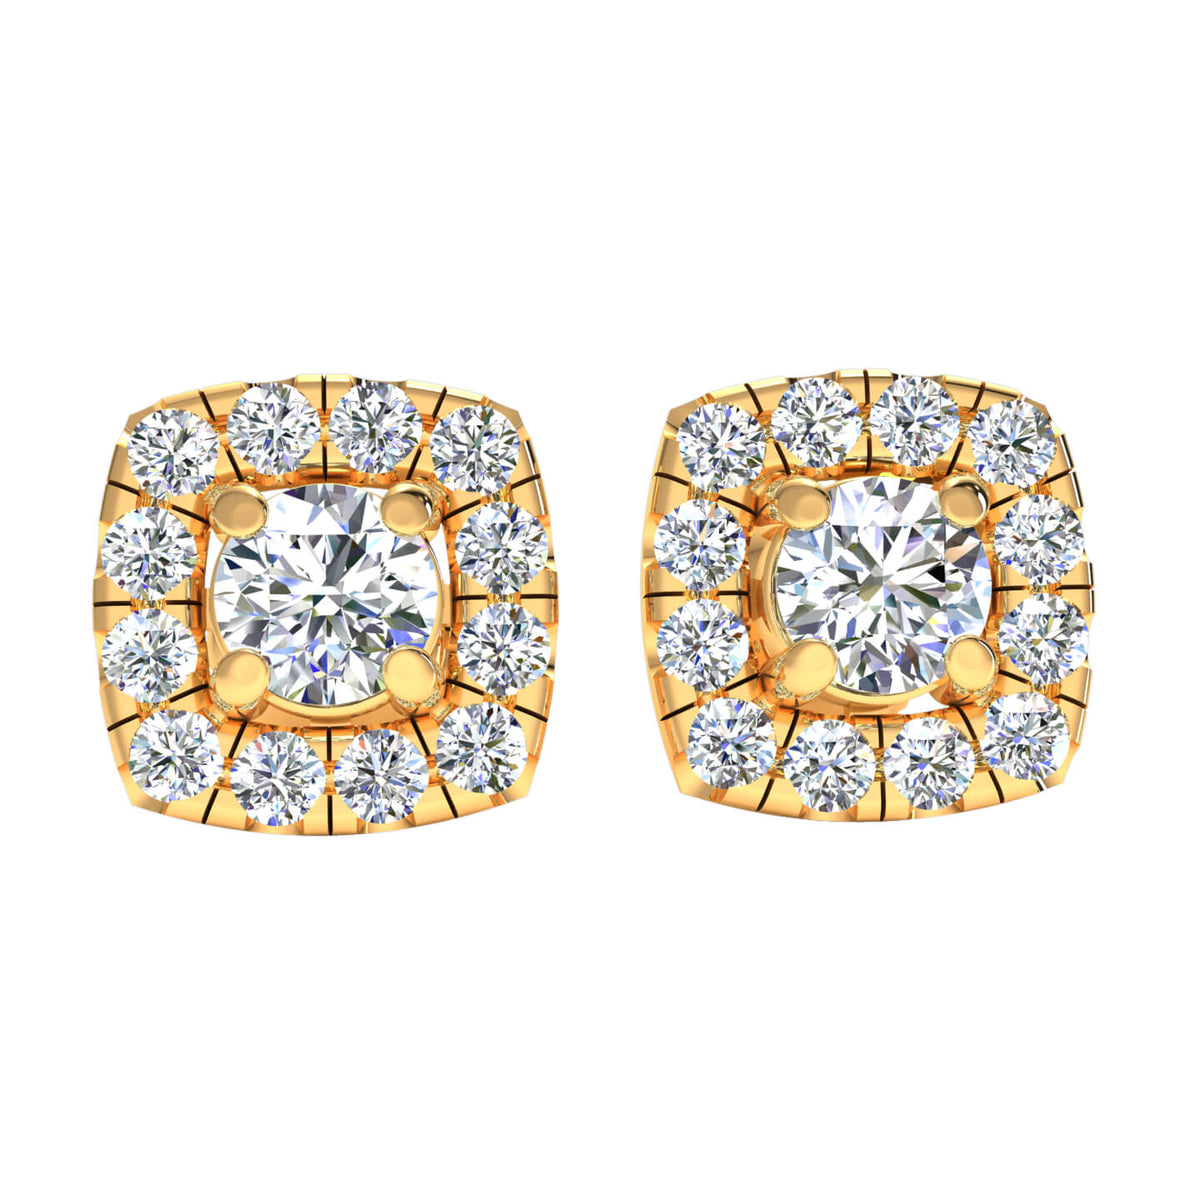 0.95 Ct Solitaire Halo Round GH SI2 Diamond Stud Earrings 14k Gold